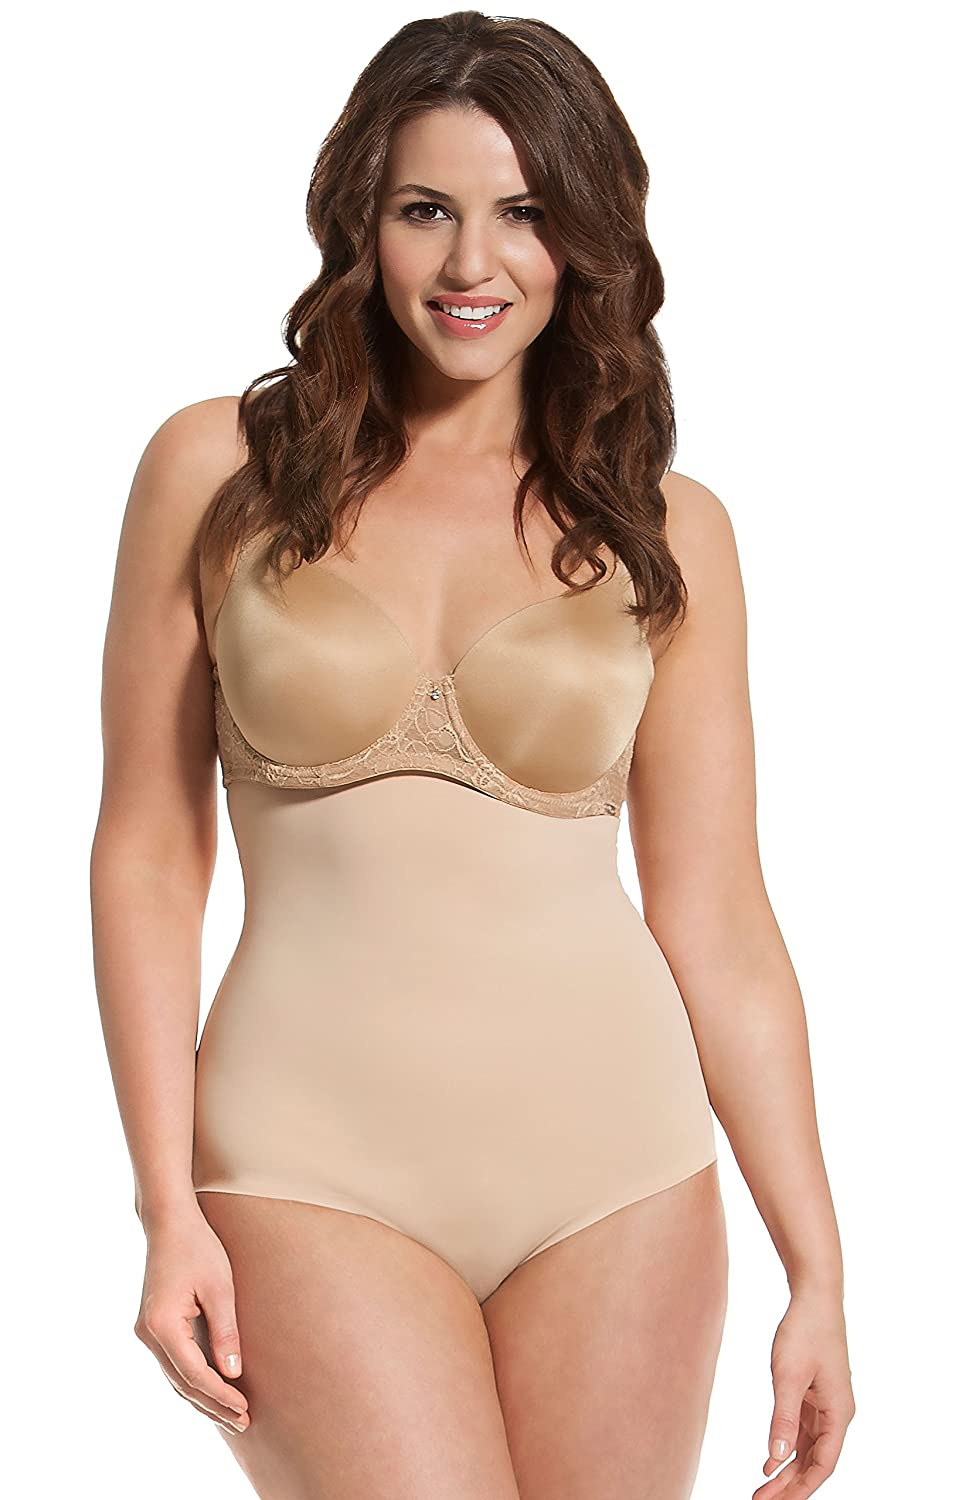 HookedUp Shapewear Women's High Waist Shaping Brief 1070